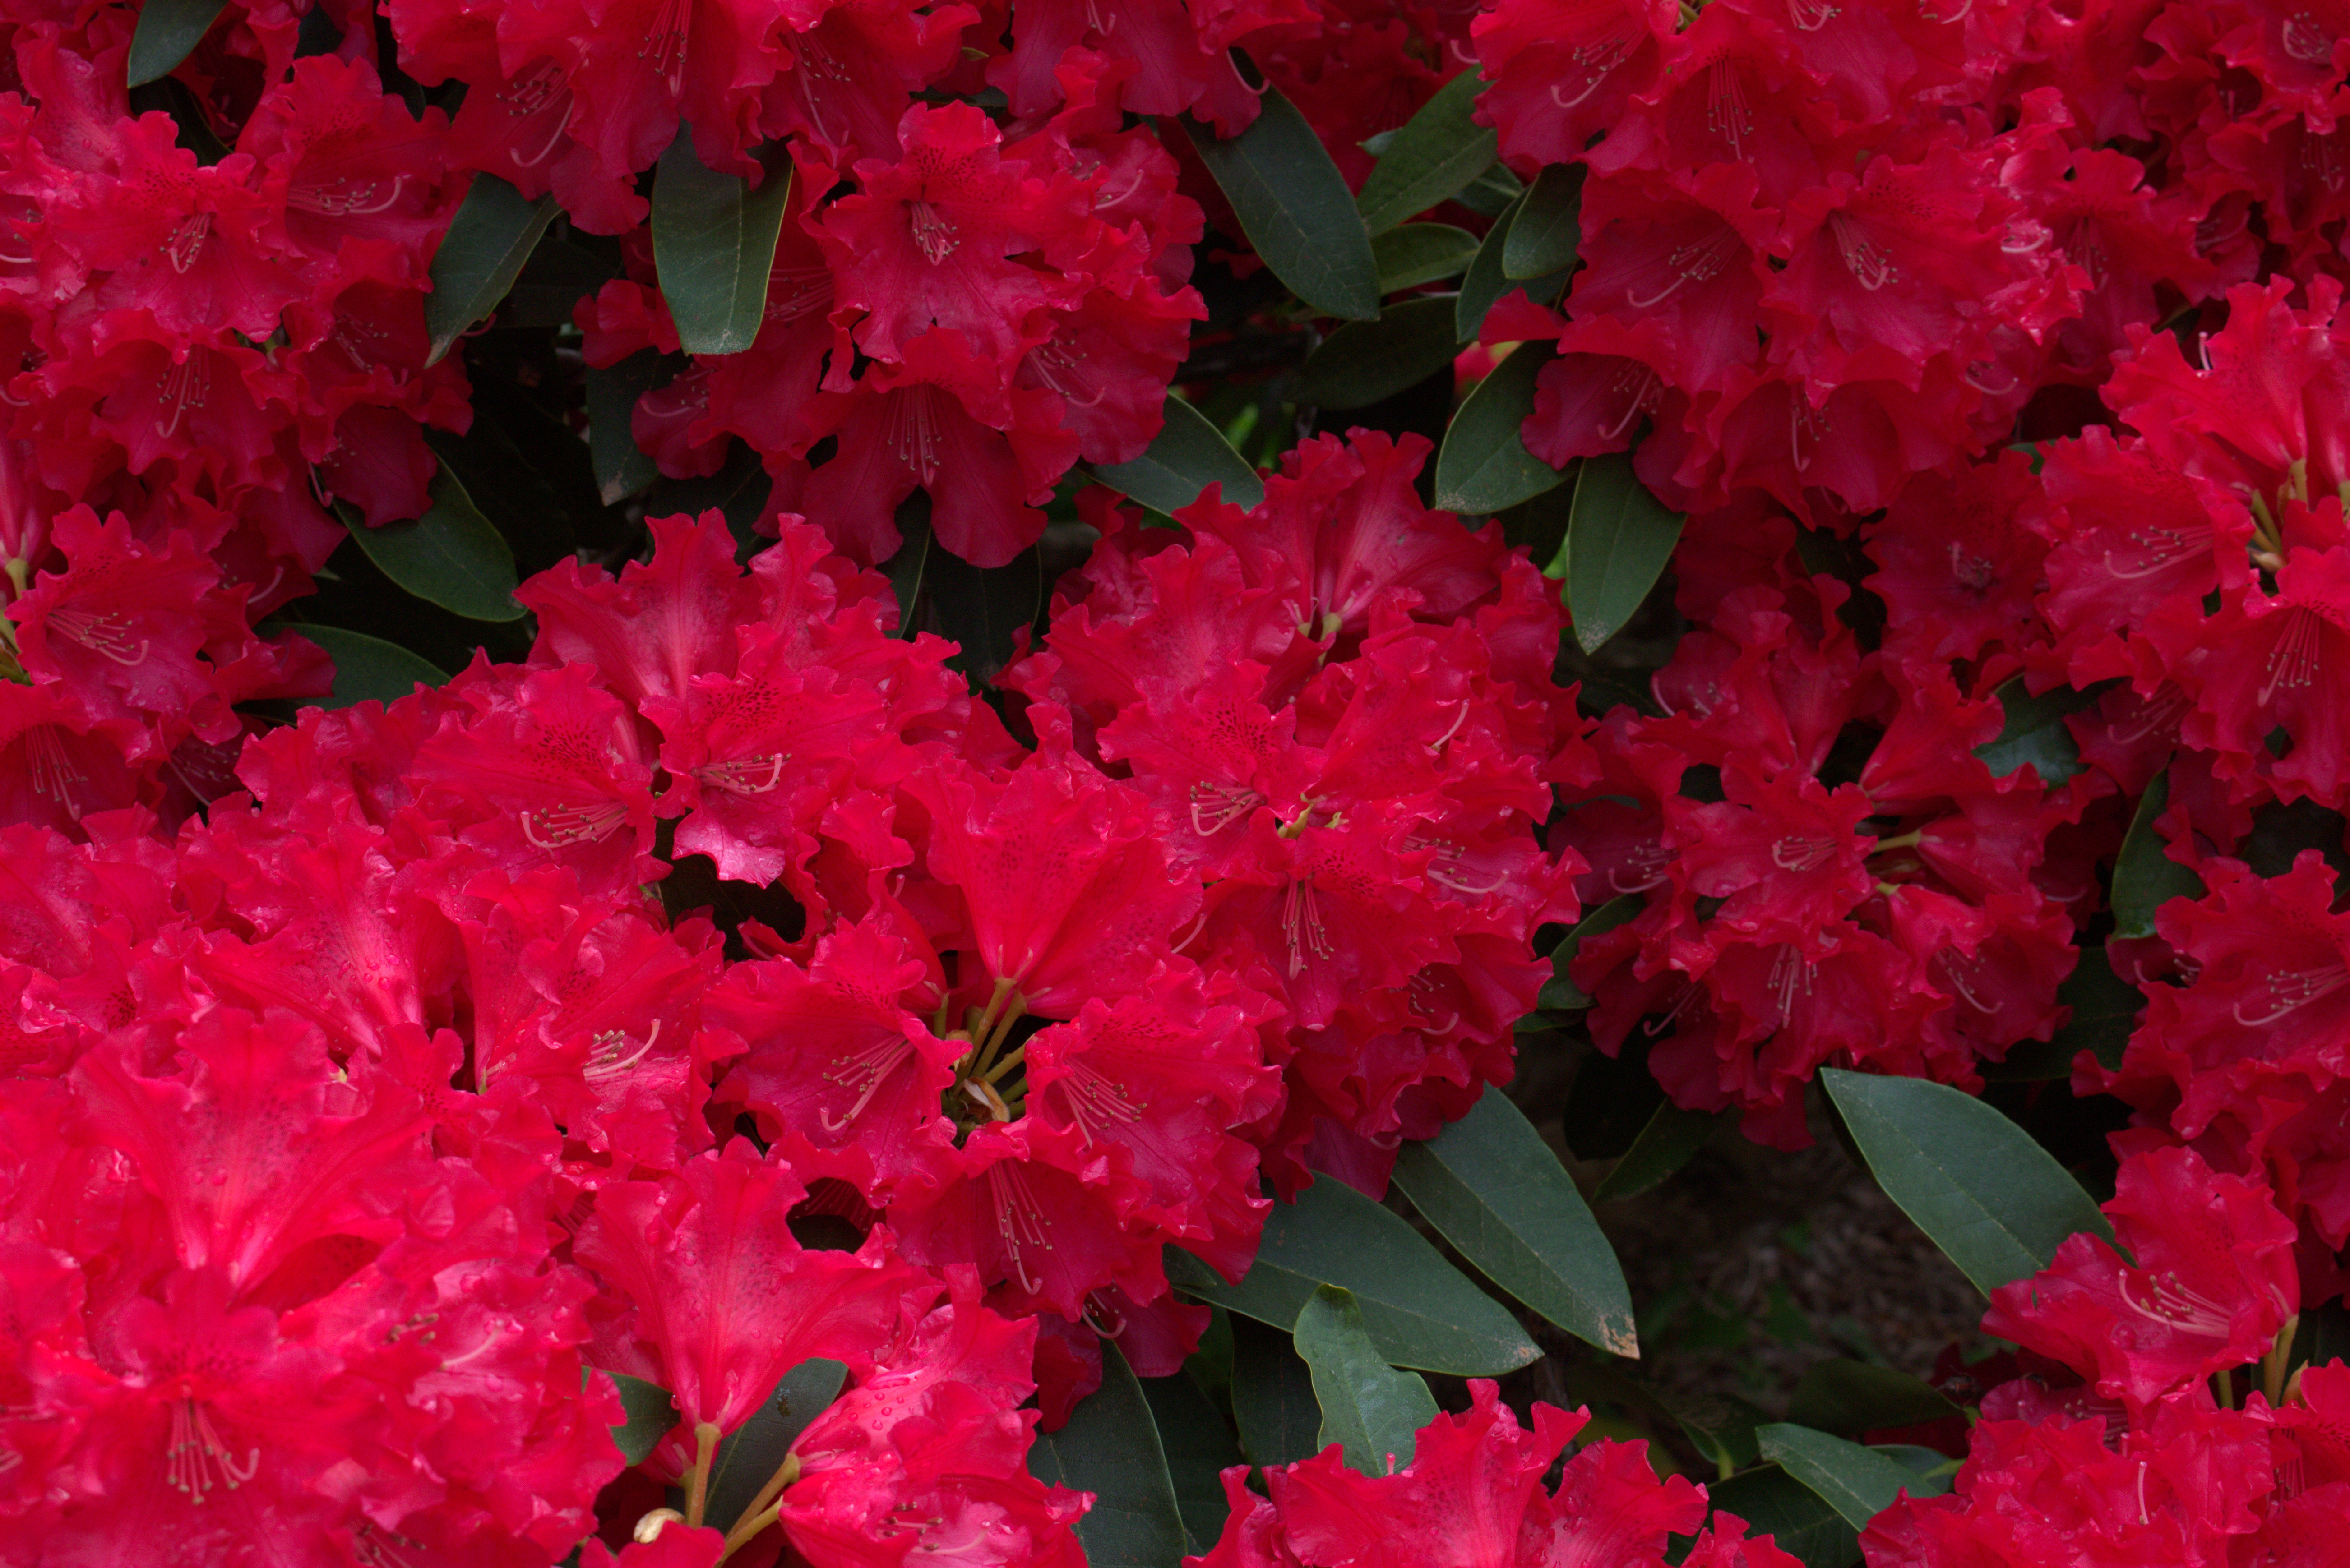 bush of red flowers.jpg